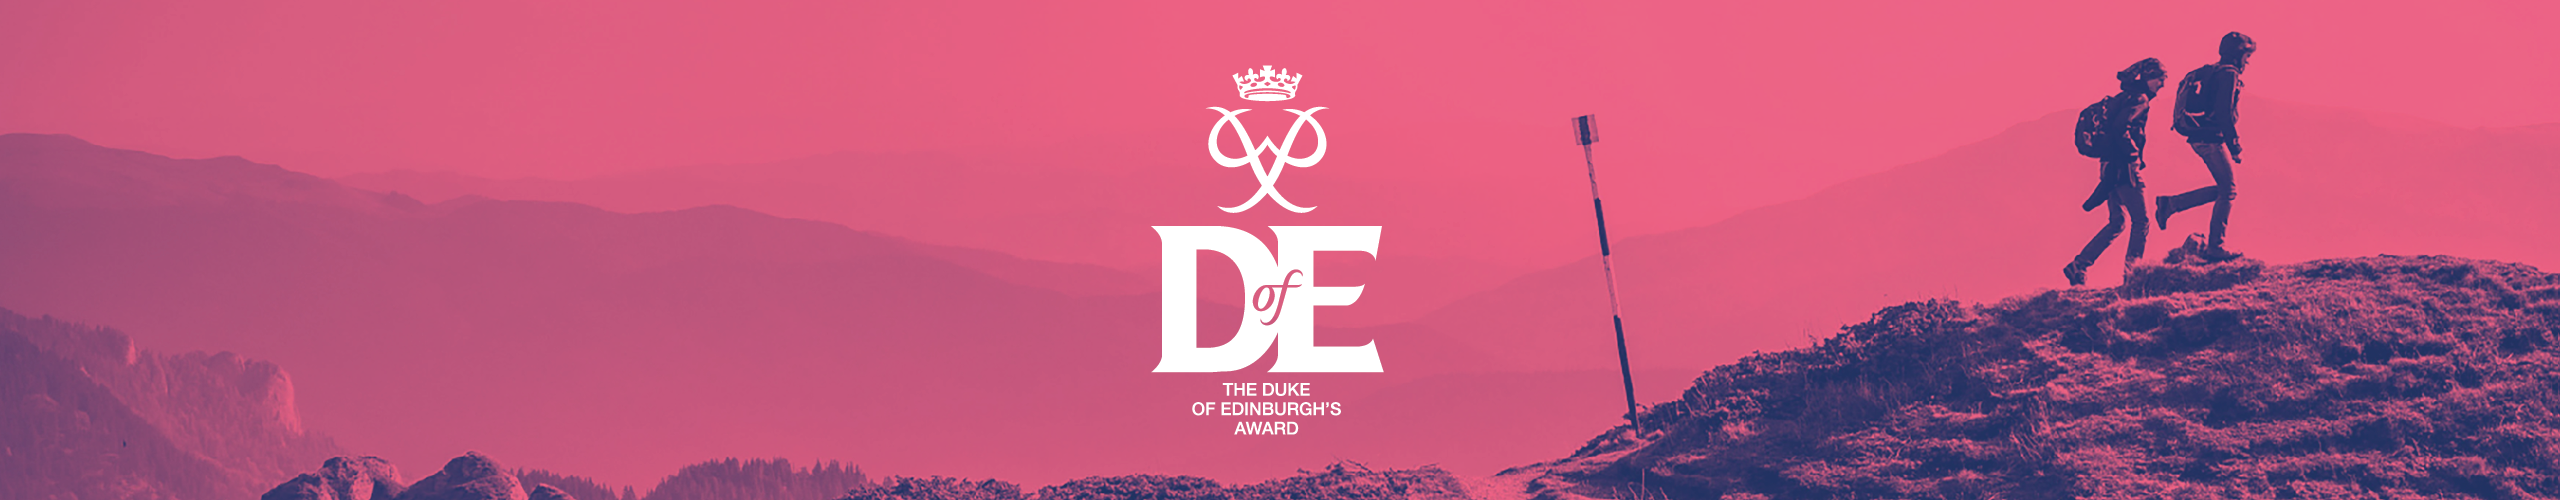 Duke of Edinburgh banner background image